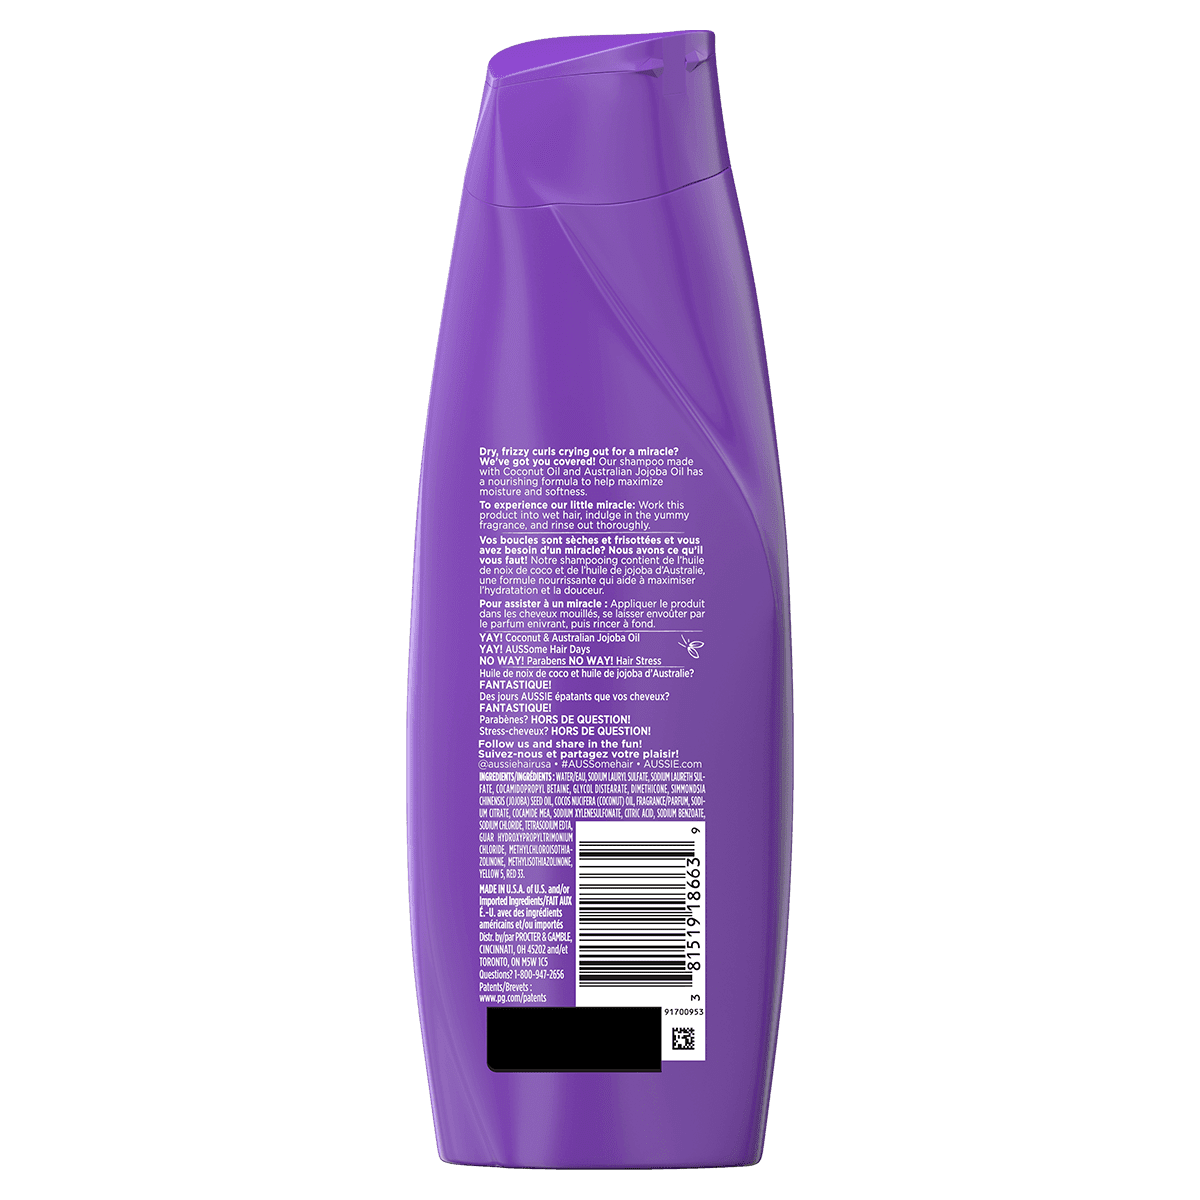 Aussie Miracle Curls shampoo for curly hair in 2020